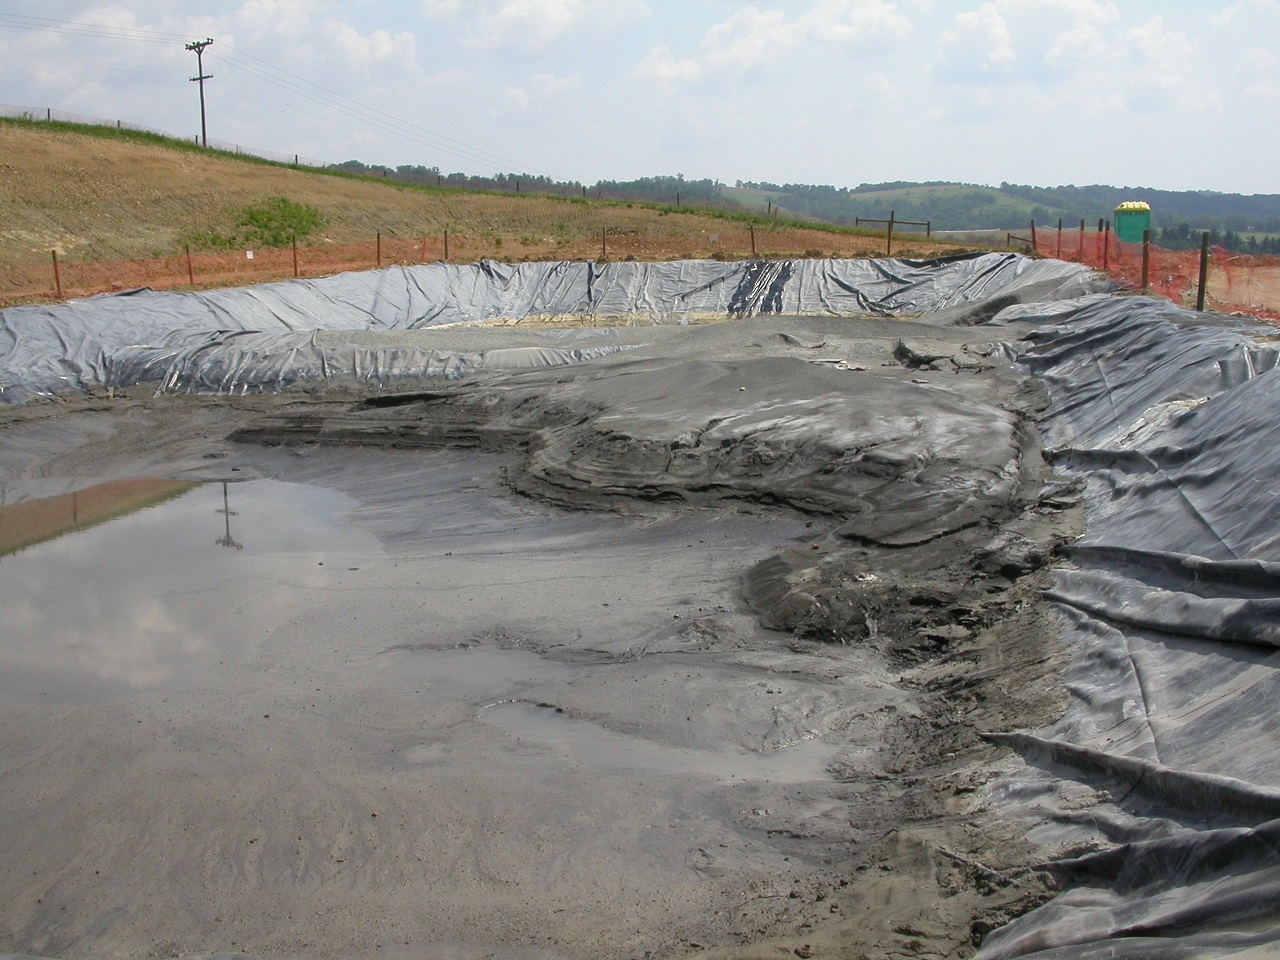 Forums on New Reports on the Health and Economic Impacts of Fracking in Pennsylvania15